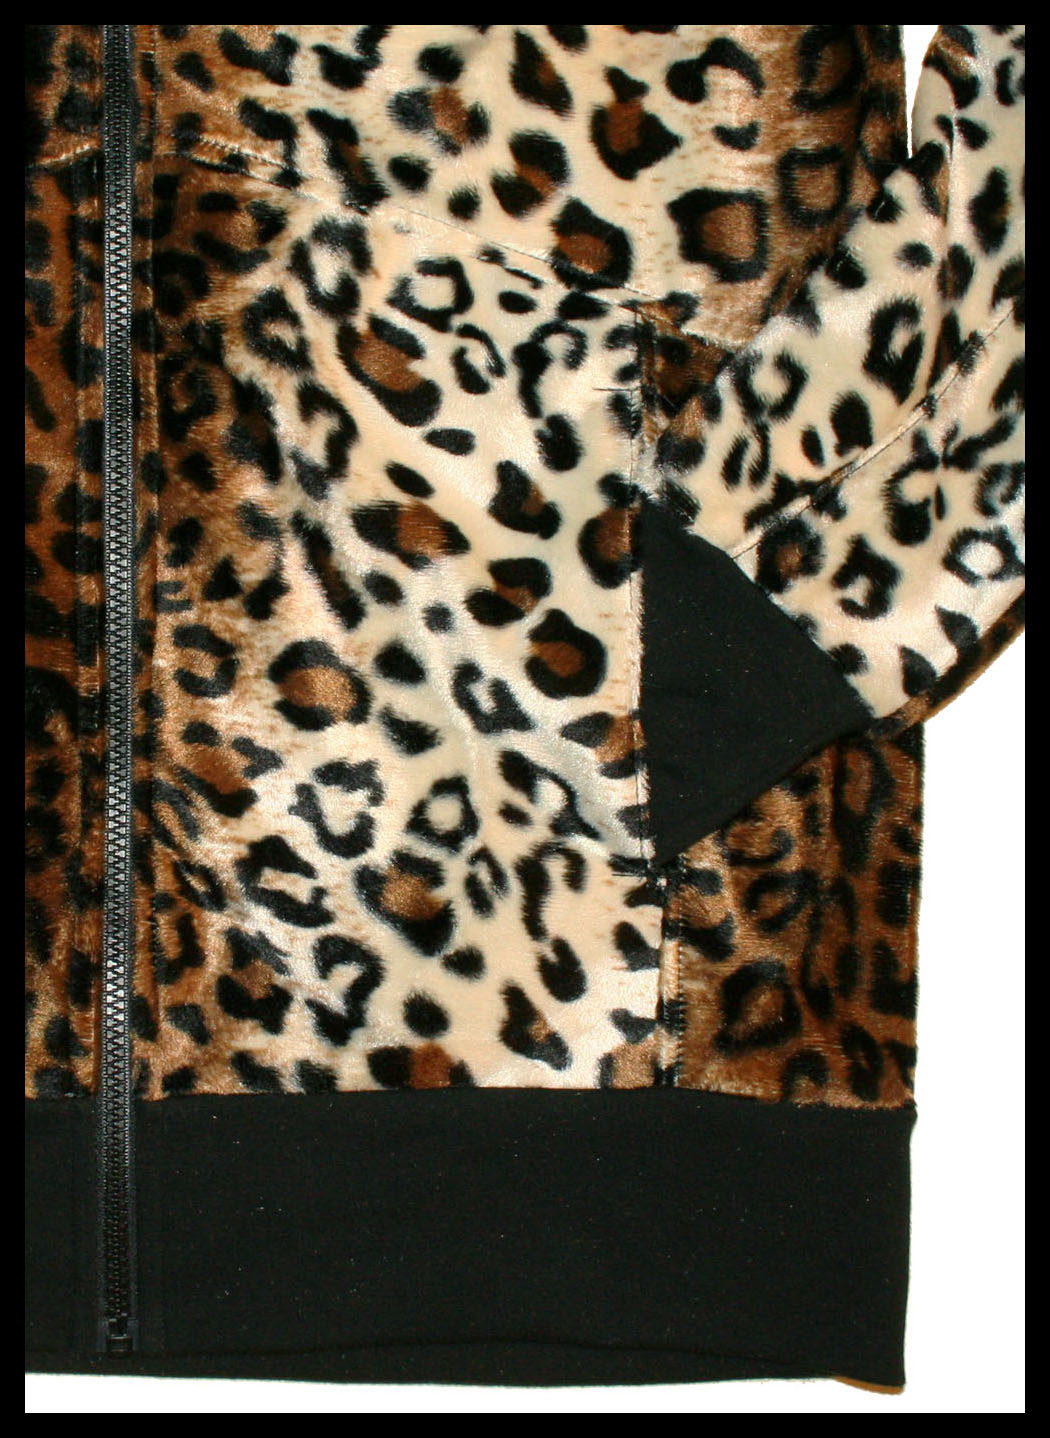 Oversized Leopard Hoodie Pocket Close-Up